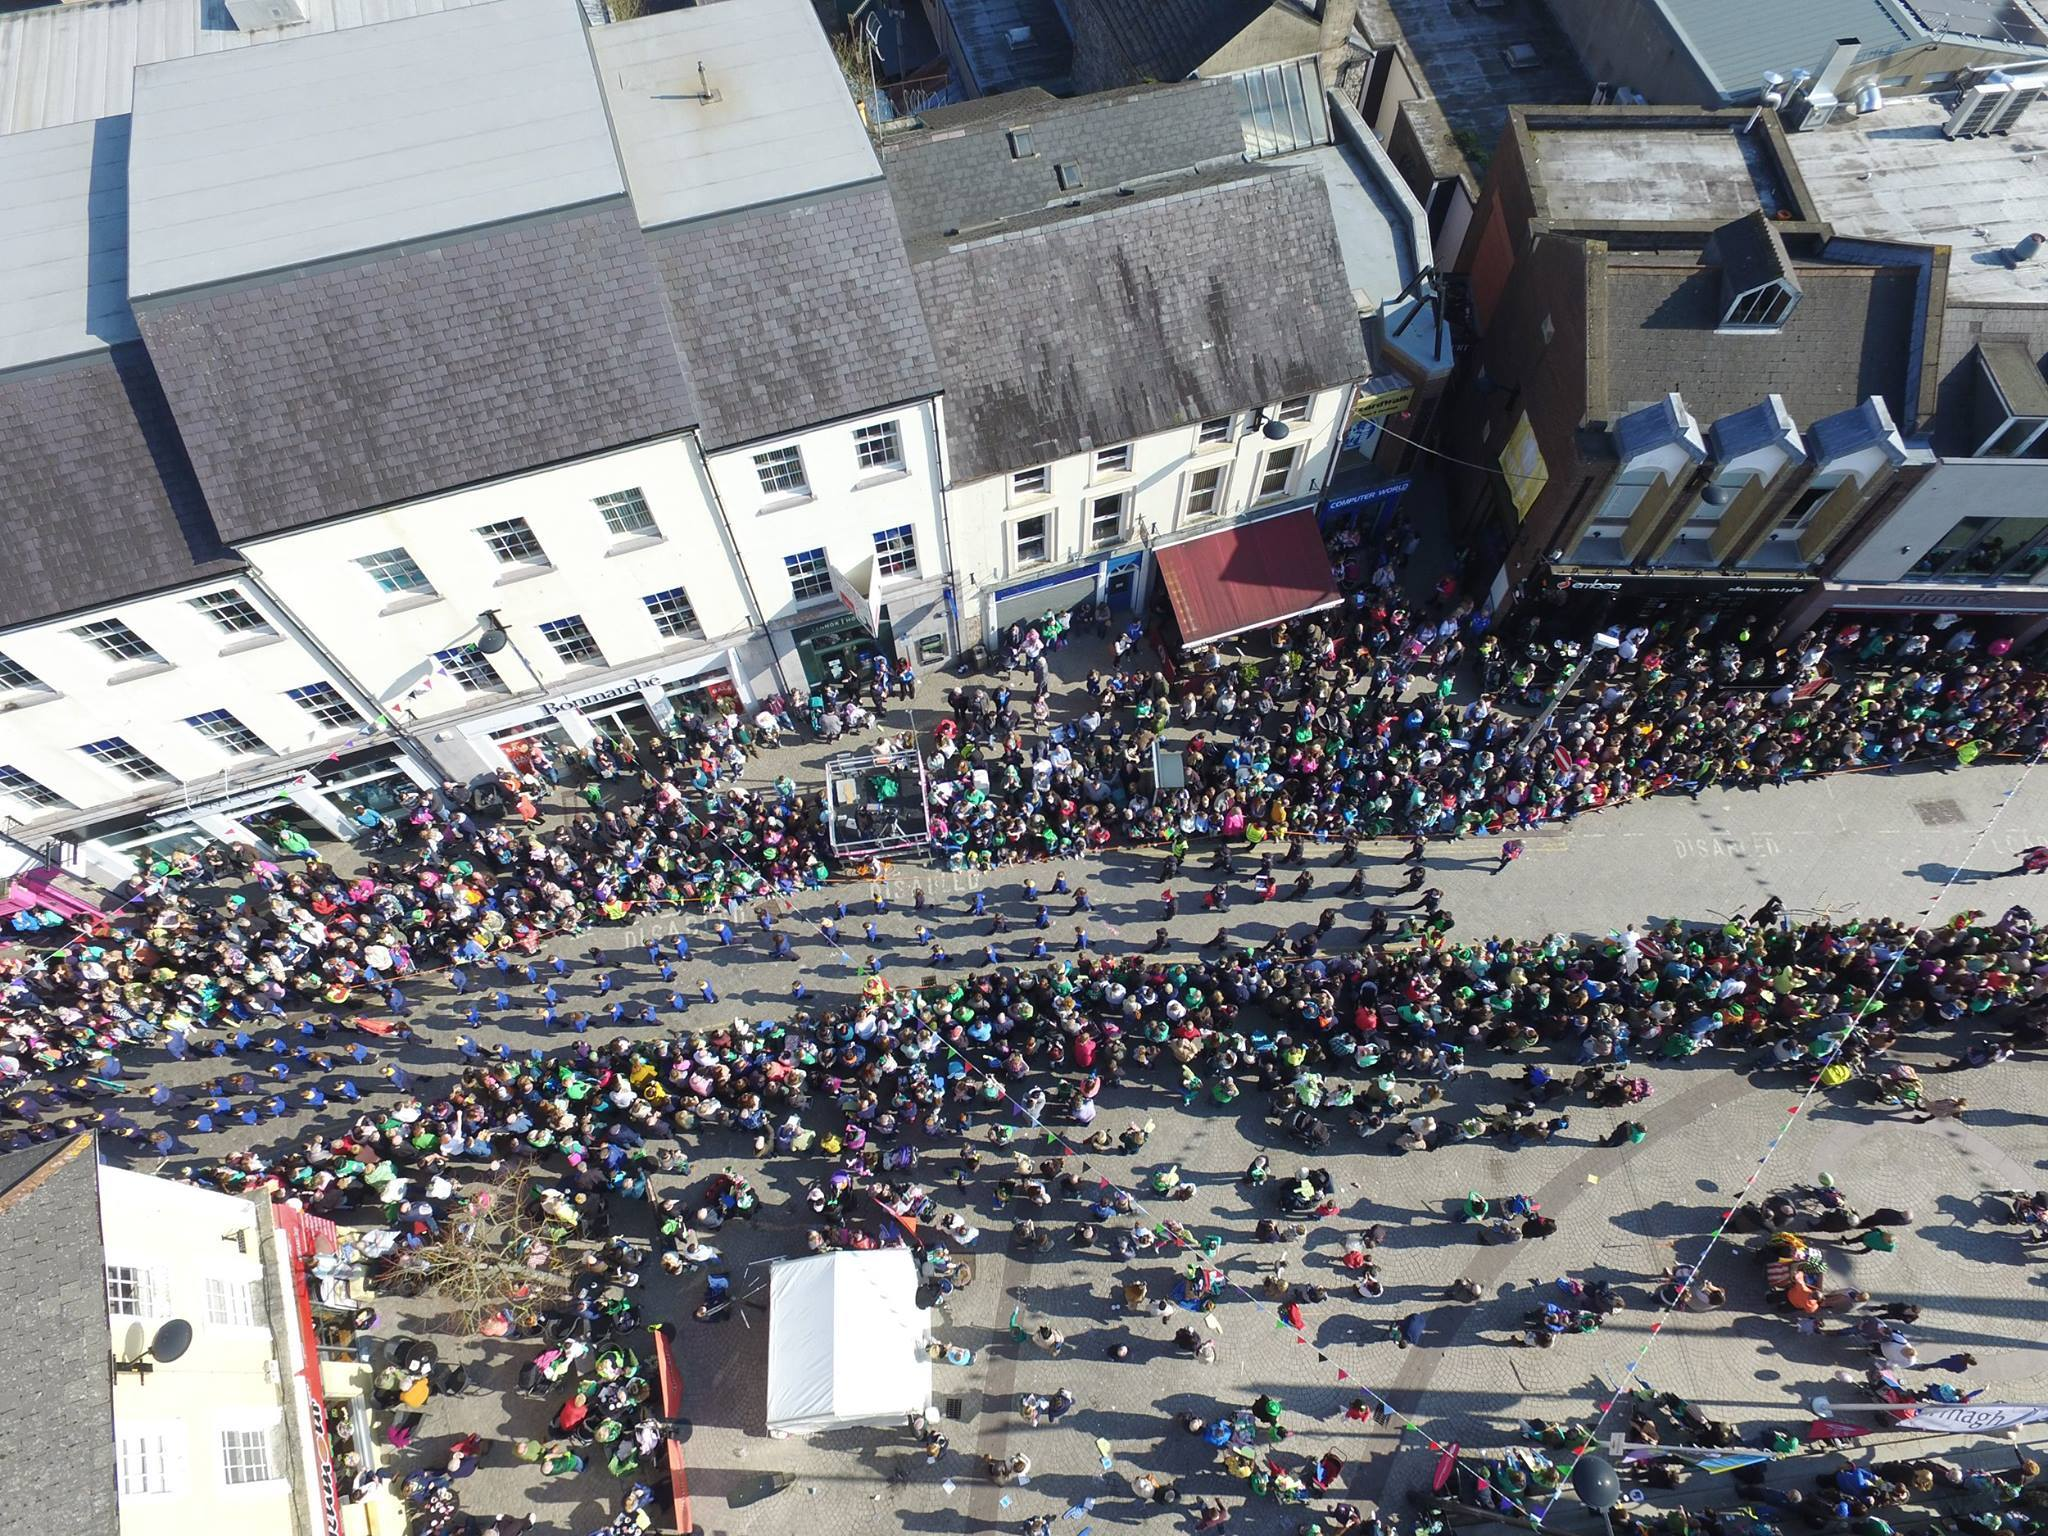 St Patrick's Day, Armagh 2016. Pic: GN Drone Works